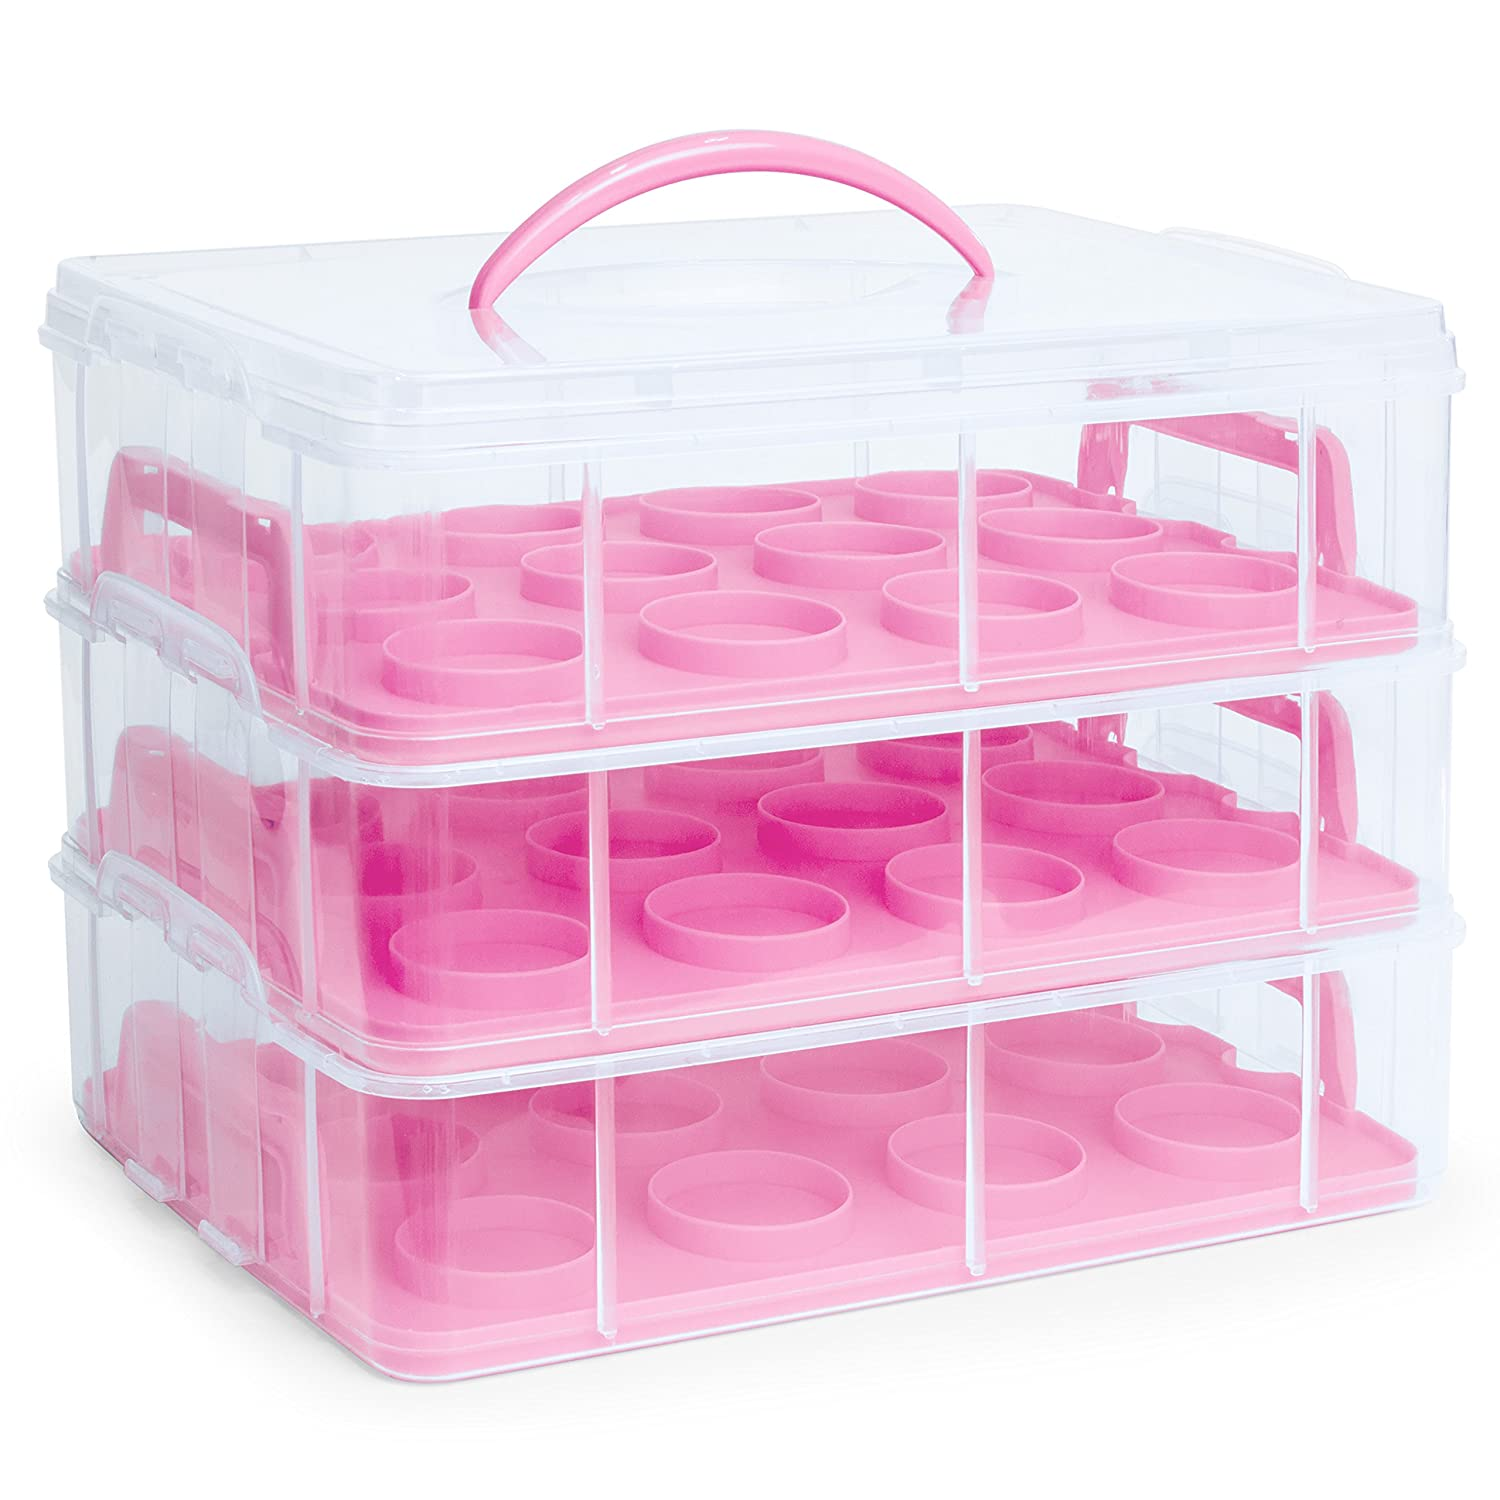 Best Choice Products 3-Tier Cake and Cupcake Holder Carrier Container Tray w/Detachable Tiers - Blue SKY4001